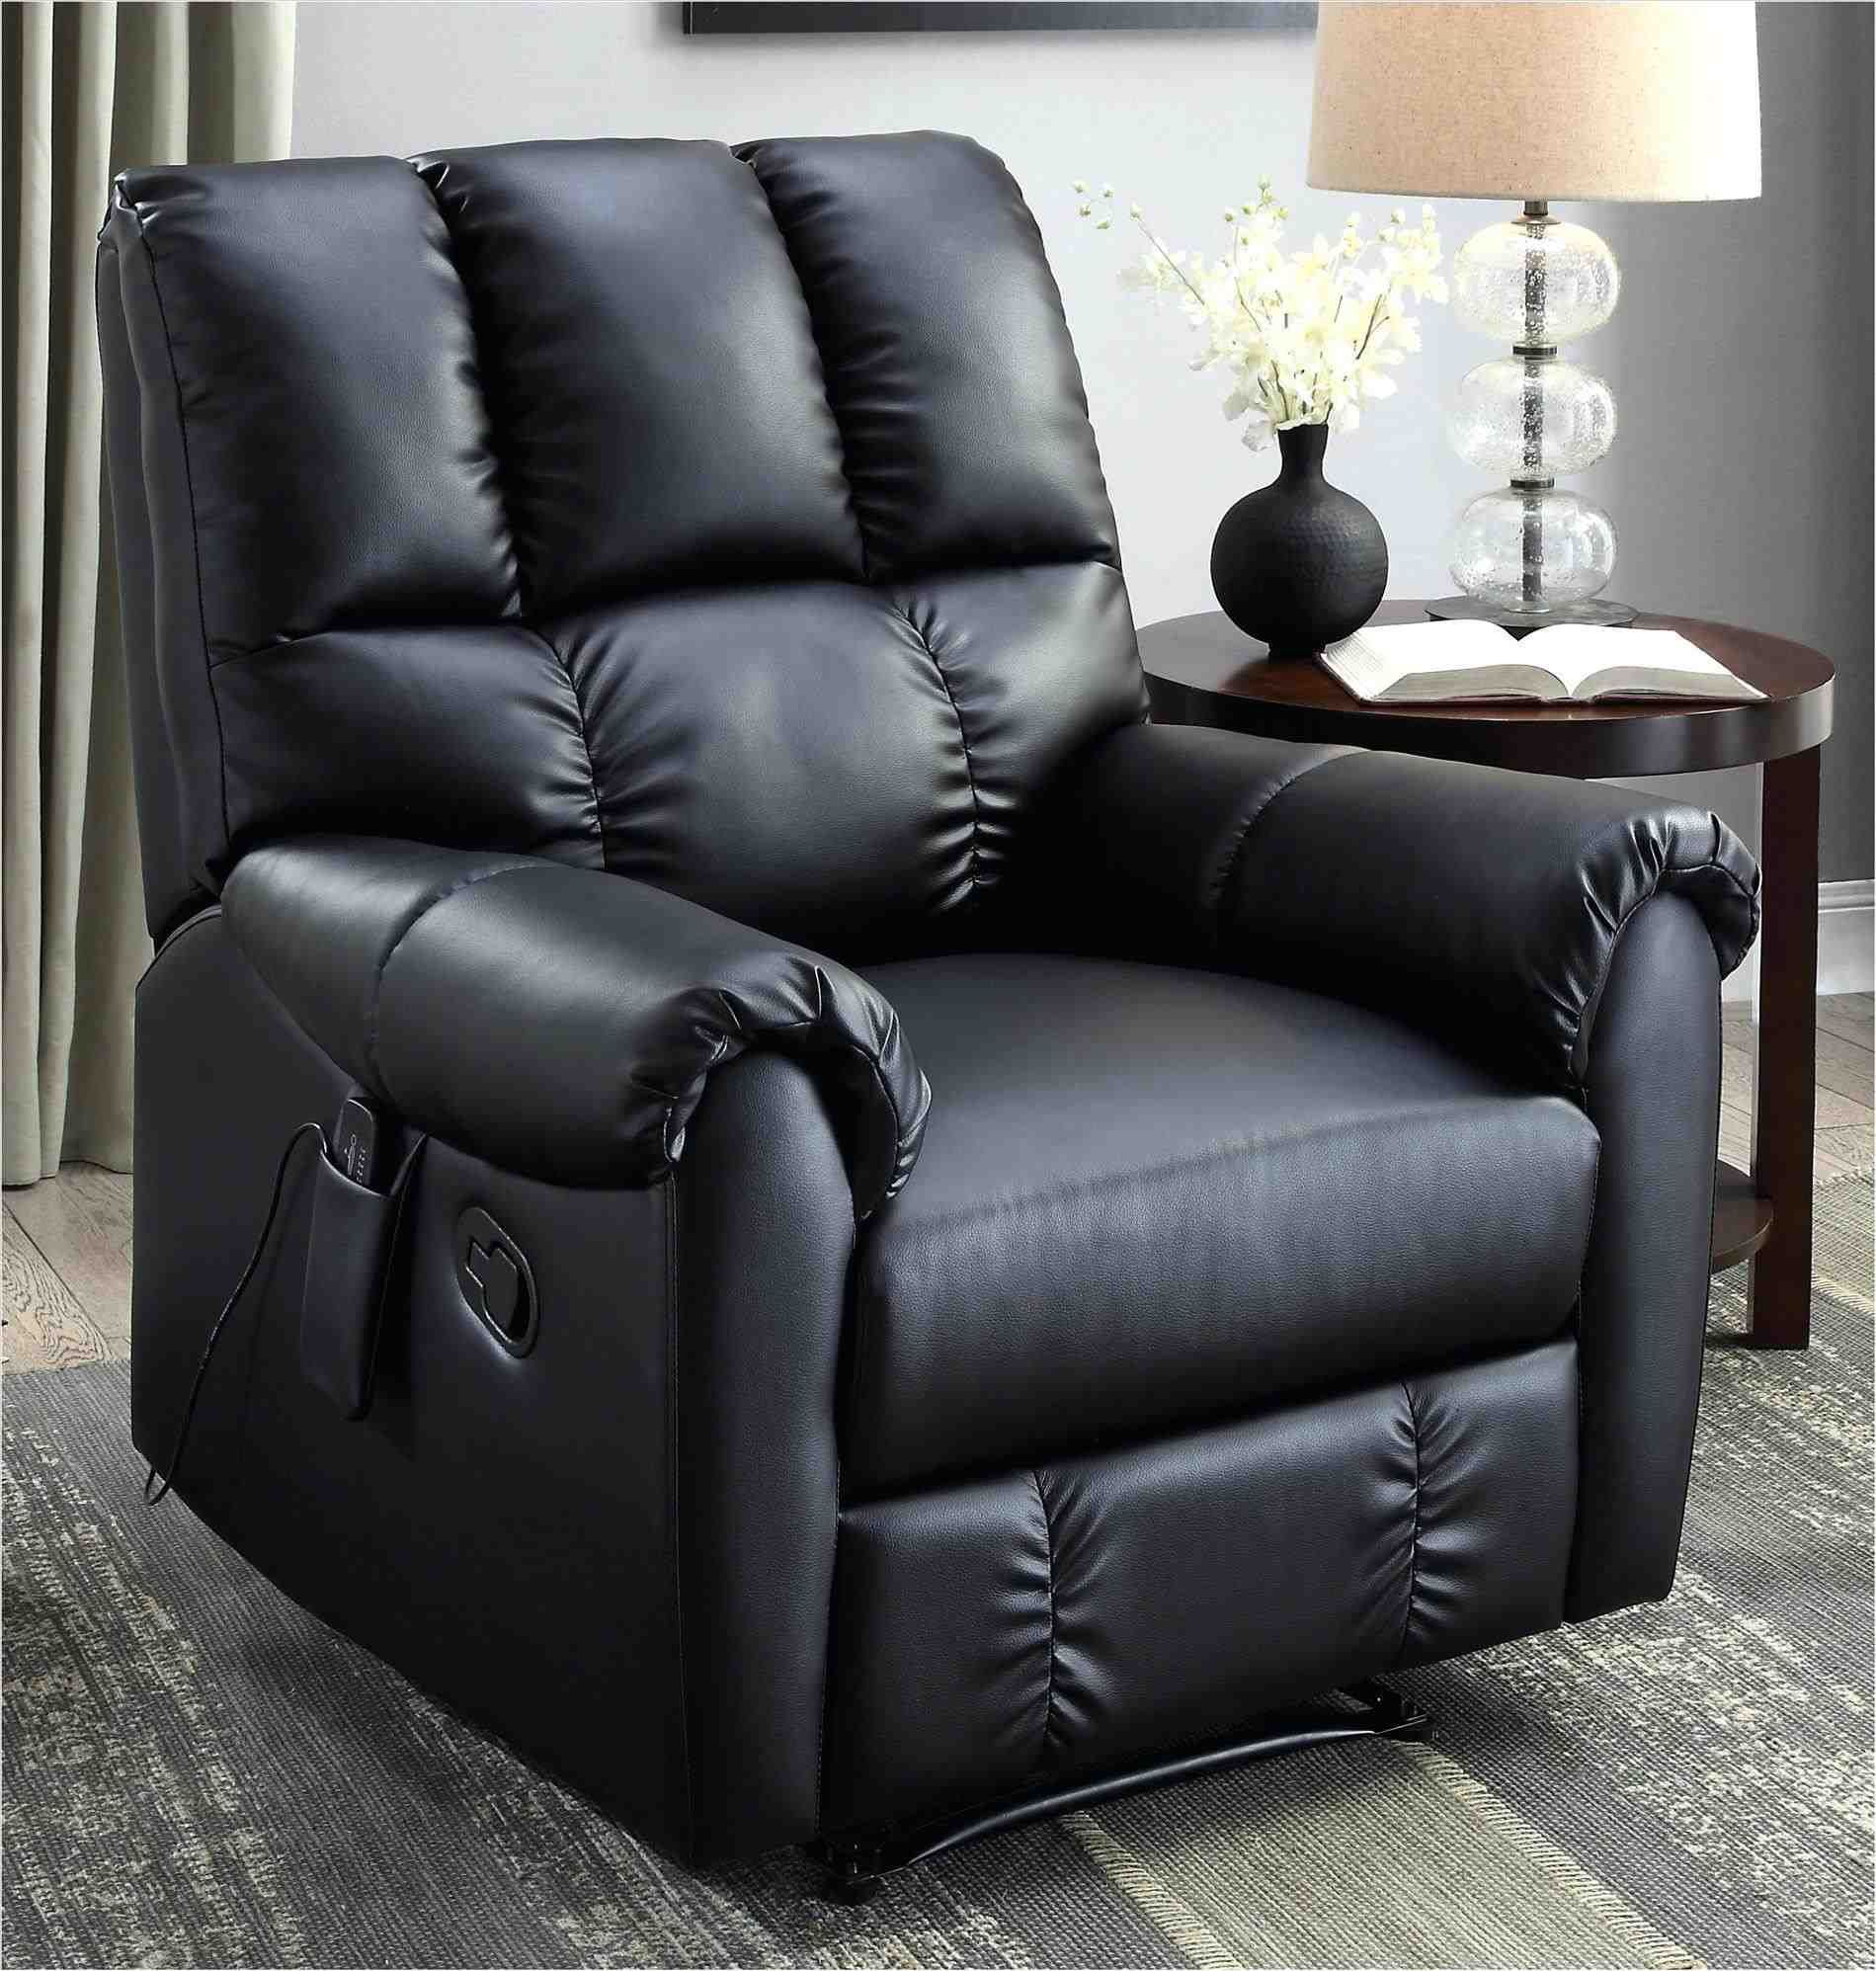 Brilliant Cheap Recliners For Sale Under 200 Armchairs Under 200 Creativecarmelina Interior Chair Design Creativecarmelinacom